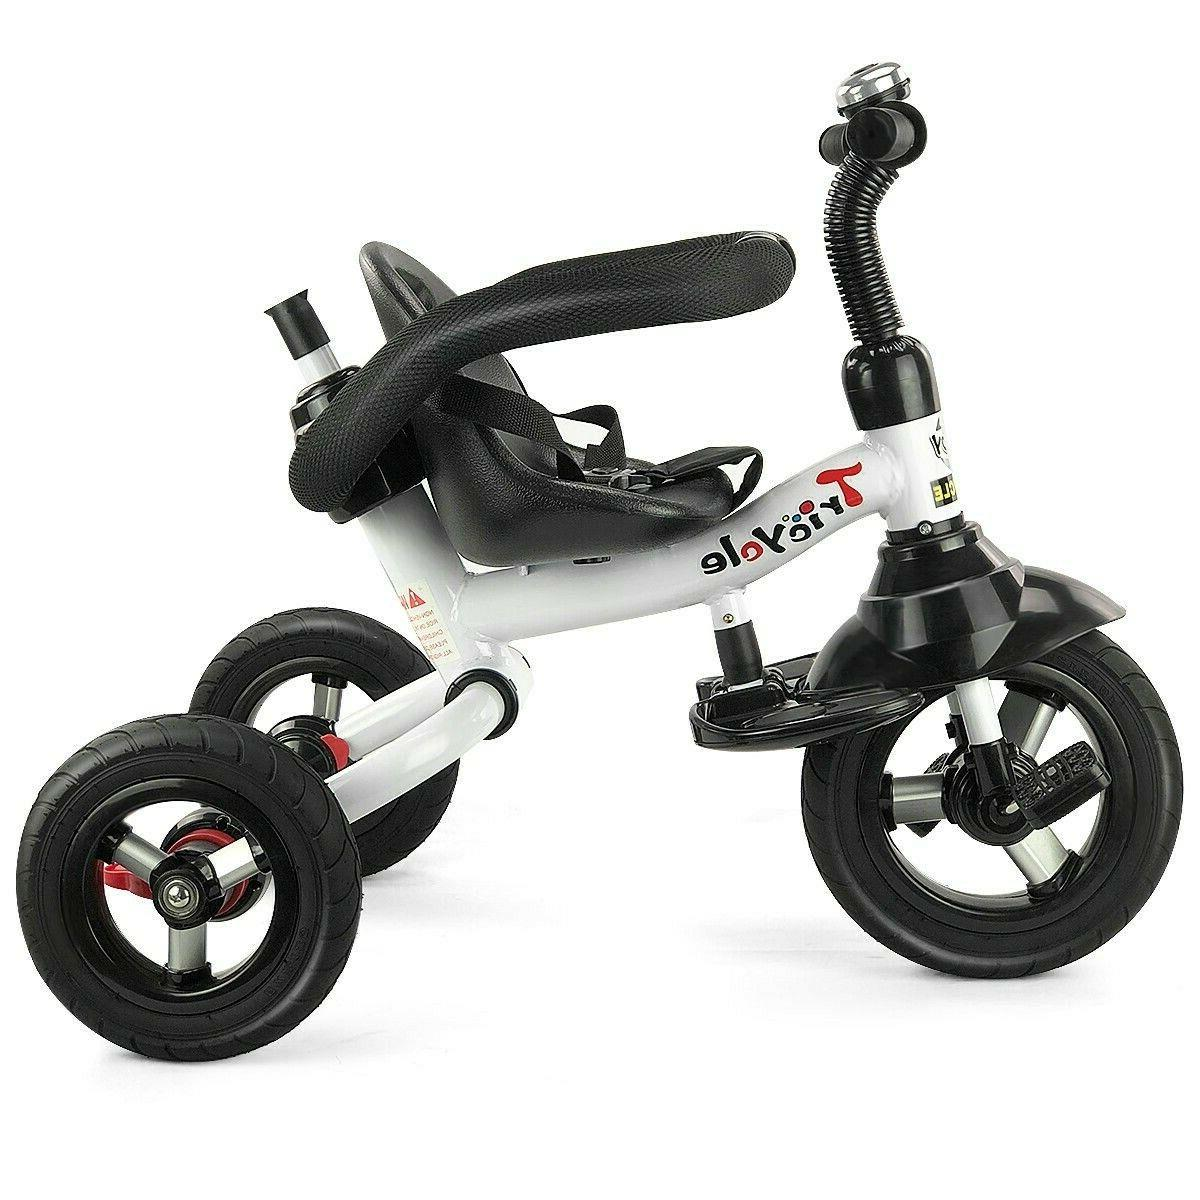 Tricycle For 2 Year Old Bike Stroller Learning